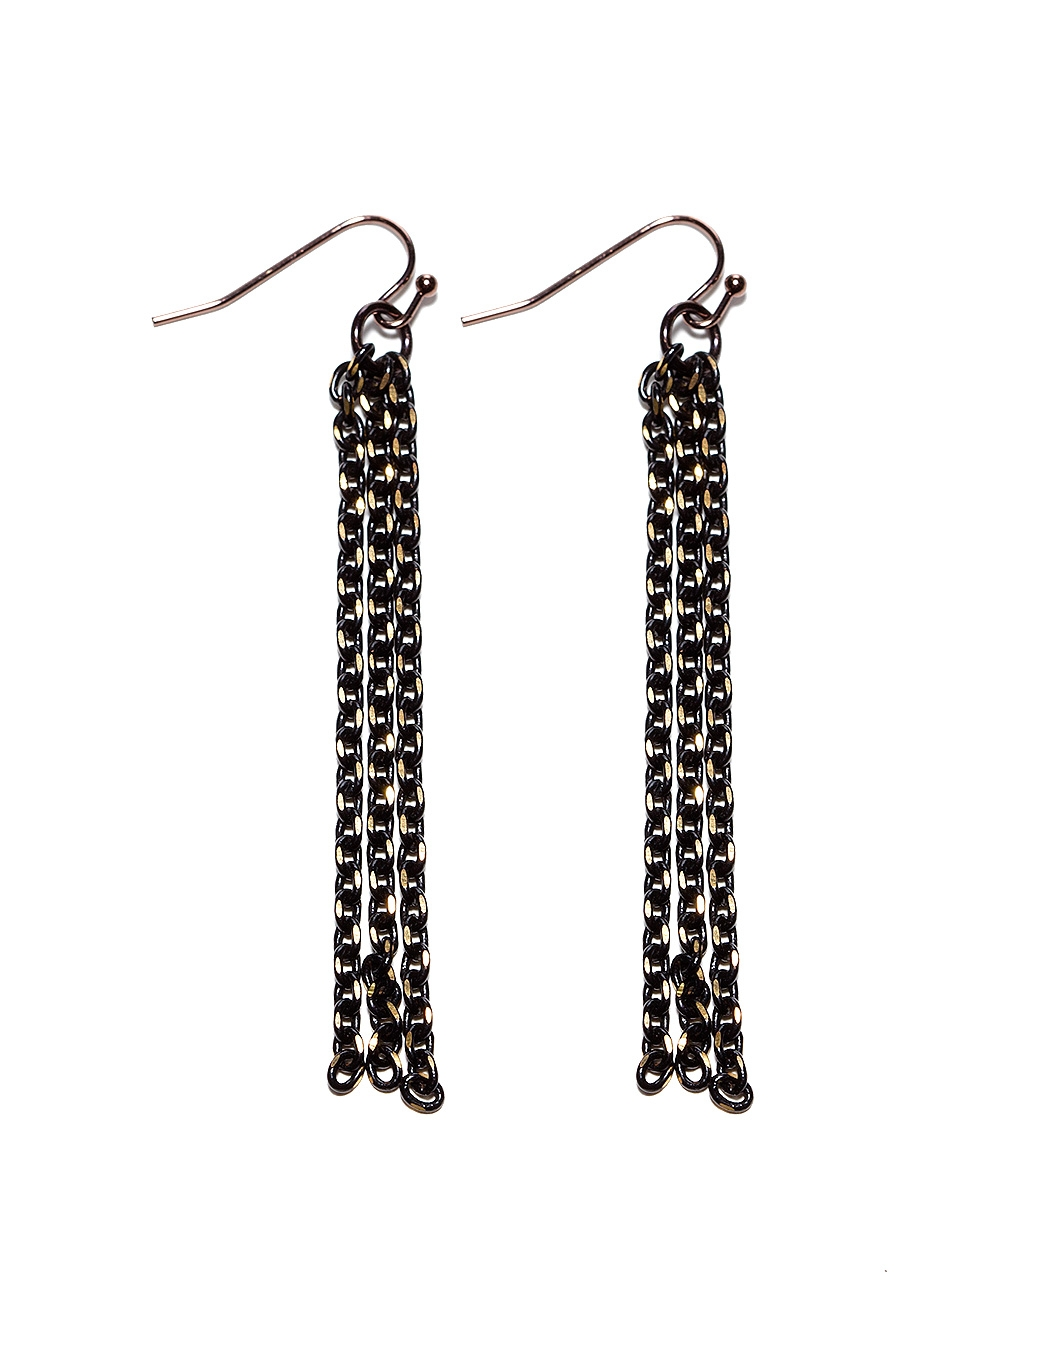 For a contemporary update on disco-feeling jewels, look to these The Limited Shimmer Chain Duster Earrings ($17) for a night out.